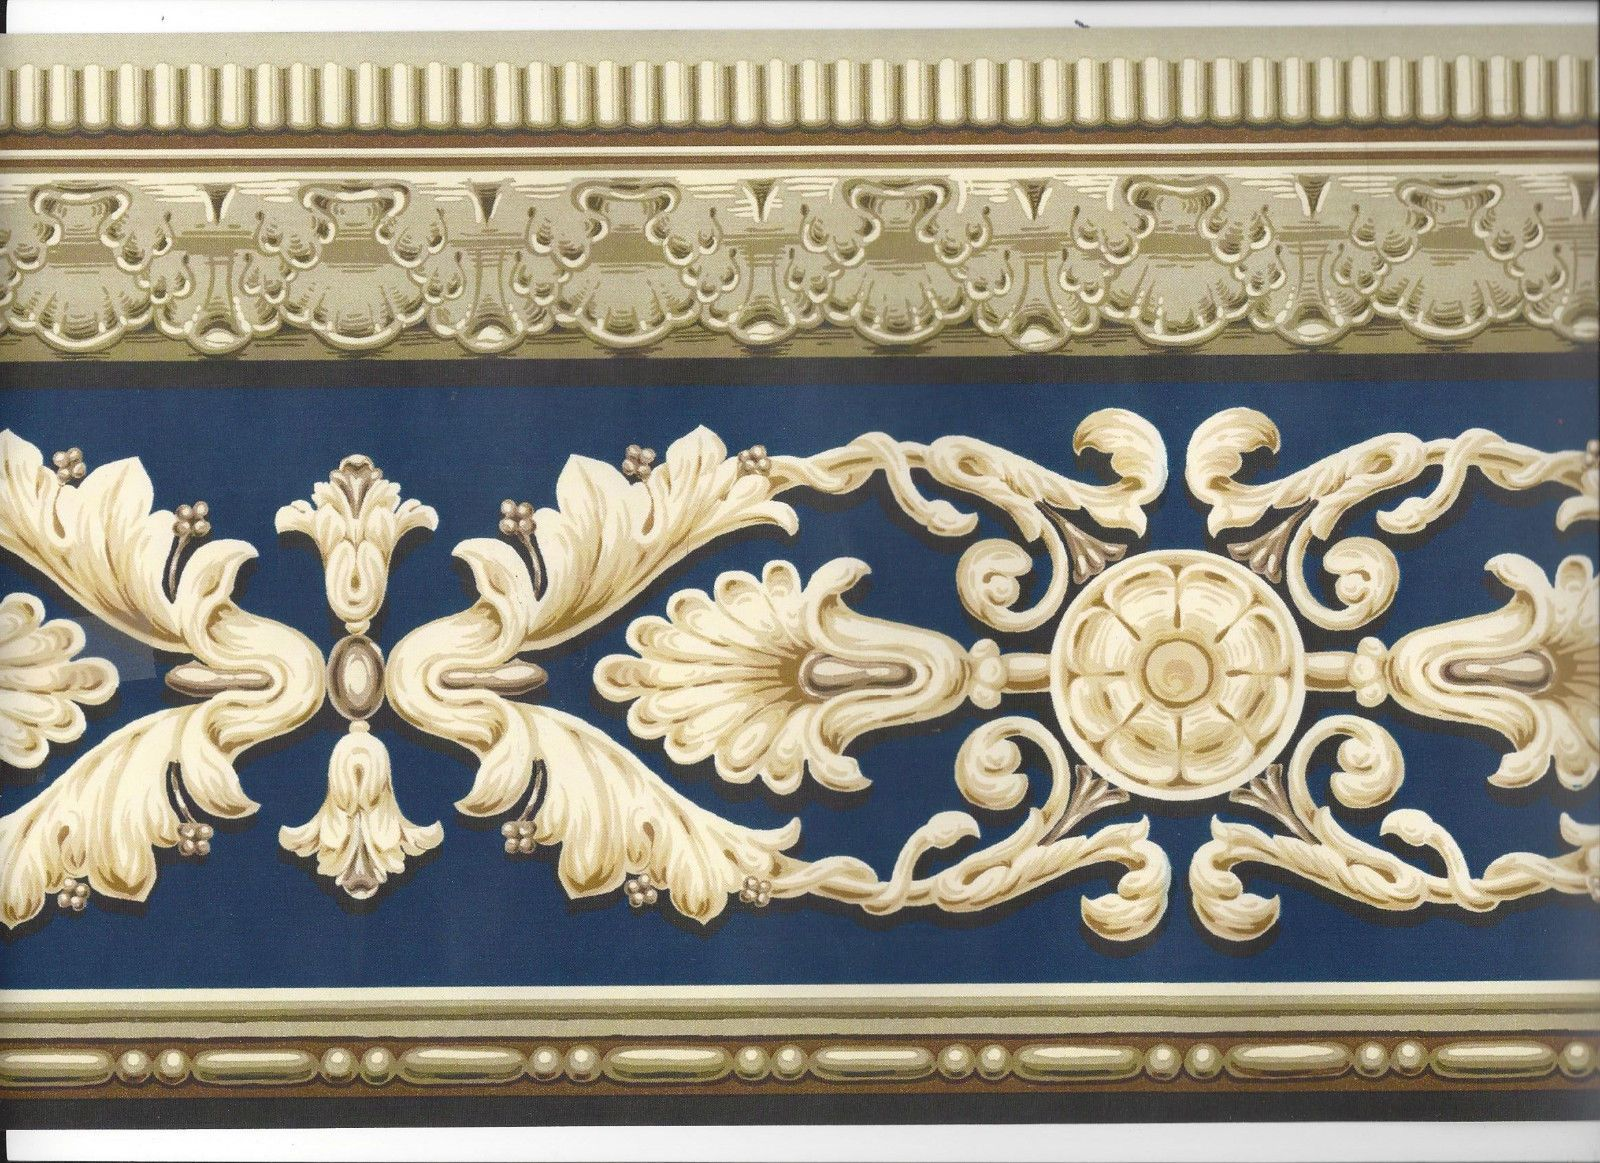 Architectural Victorian Moulding Wallpaper Border Classic